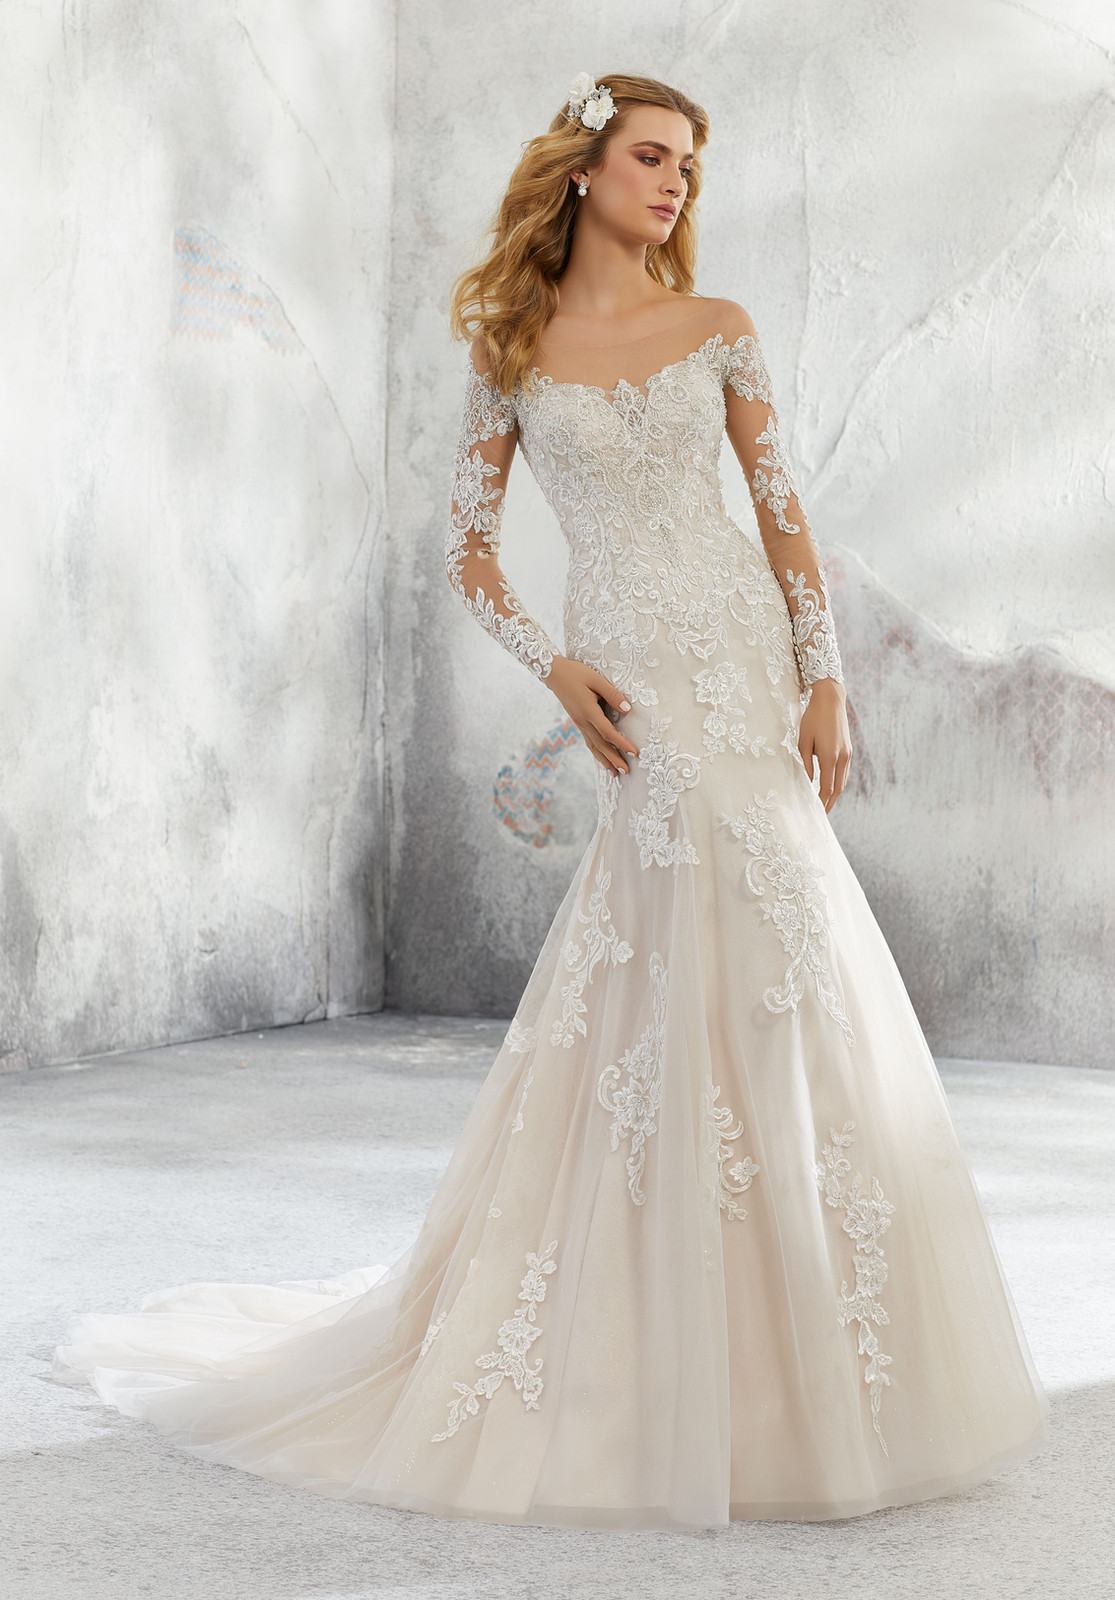 8db8fb6d9115 Leighton This Soft A-Line Bridal Gown Features an Intricately Beaded and Embroidered  Bodice with a Delicate Off the Shoulder Illusion Neckline. The Soft Net ...